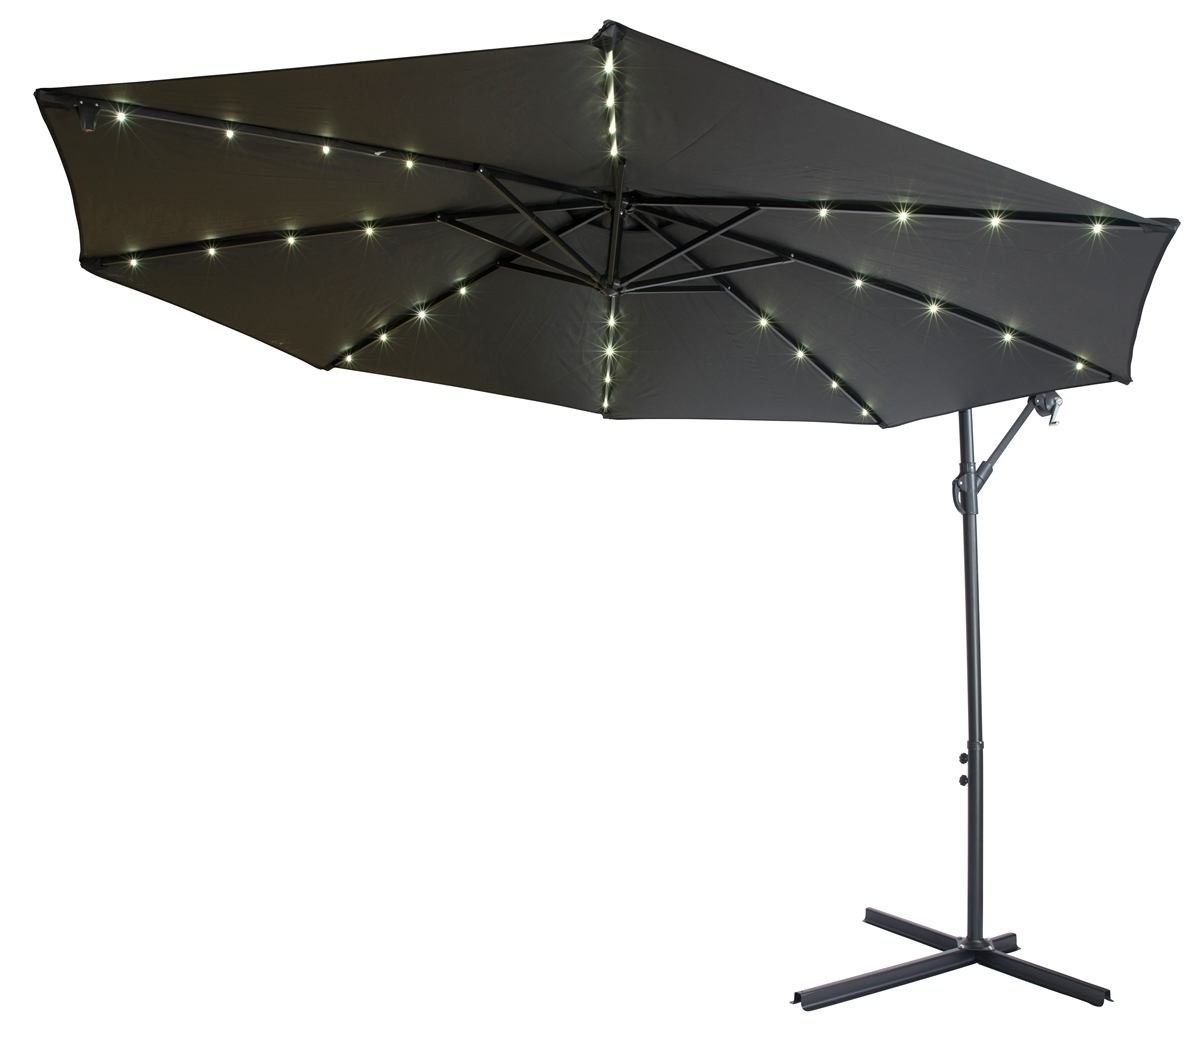 Black Patio Umbrella With Solar Lights 10 Deluxe Polyester Fset With Regard To Most Popular Sunbrella Patio Umbrellas With Solar Lights (Gallery 16 of 20)